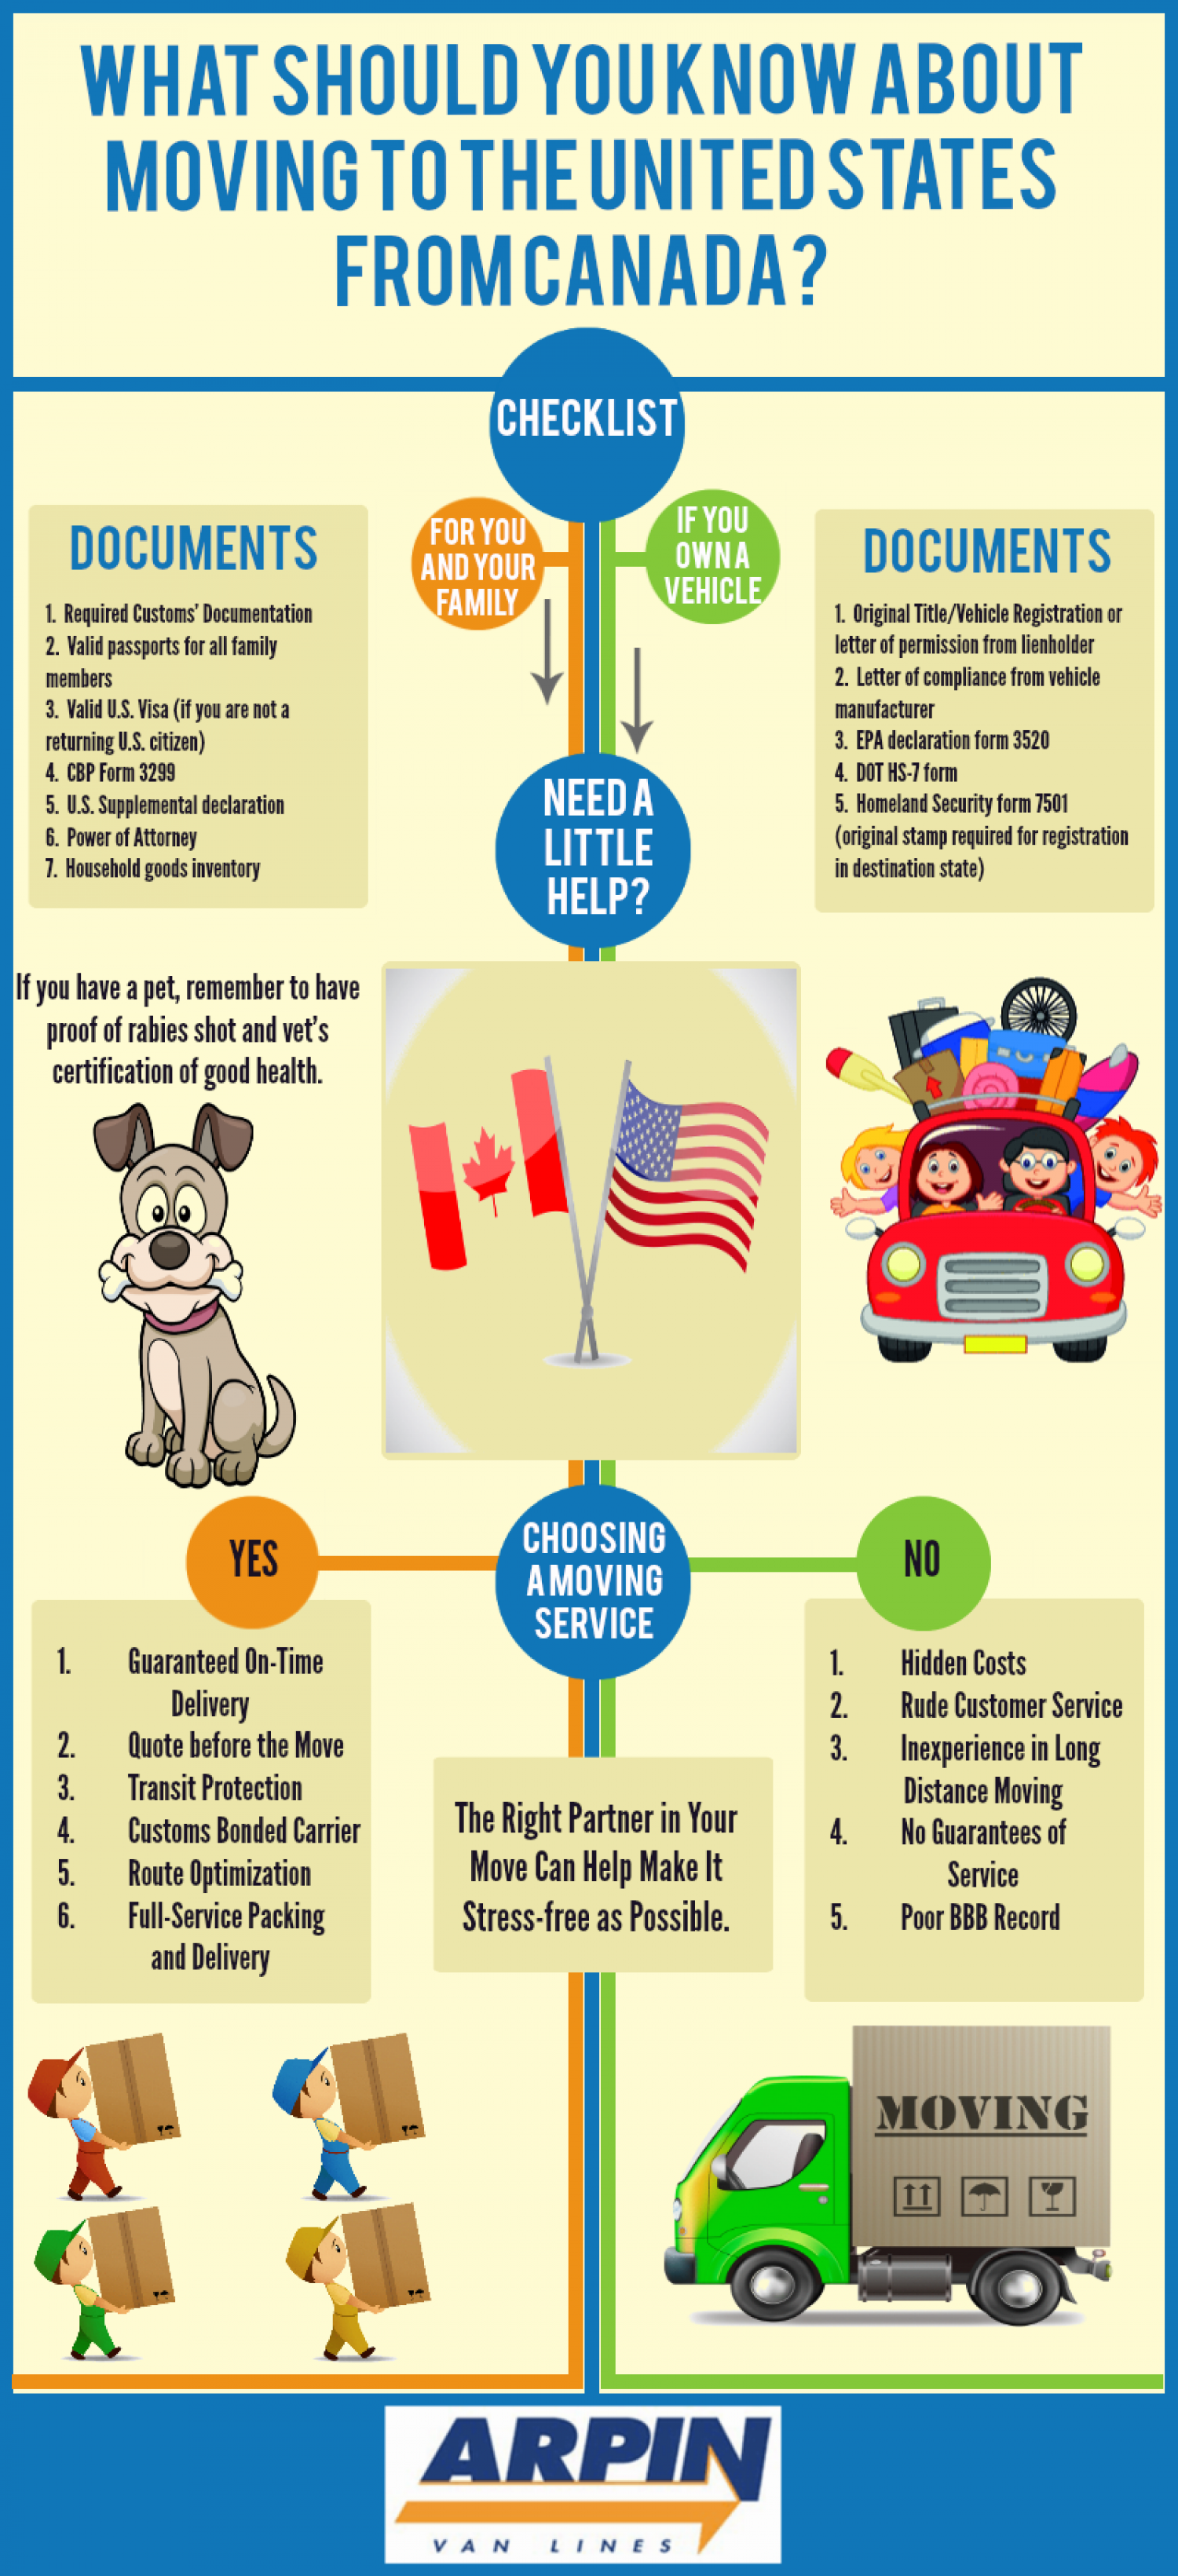 What You Should Know About Moving To The United States From Canada Infographic